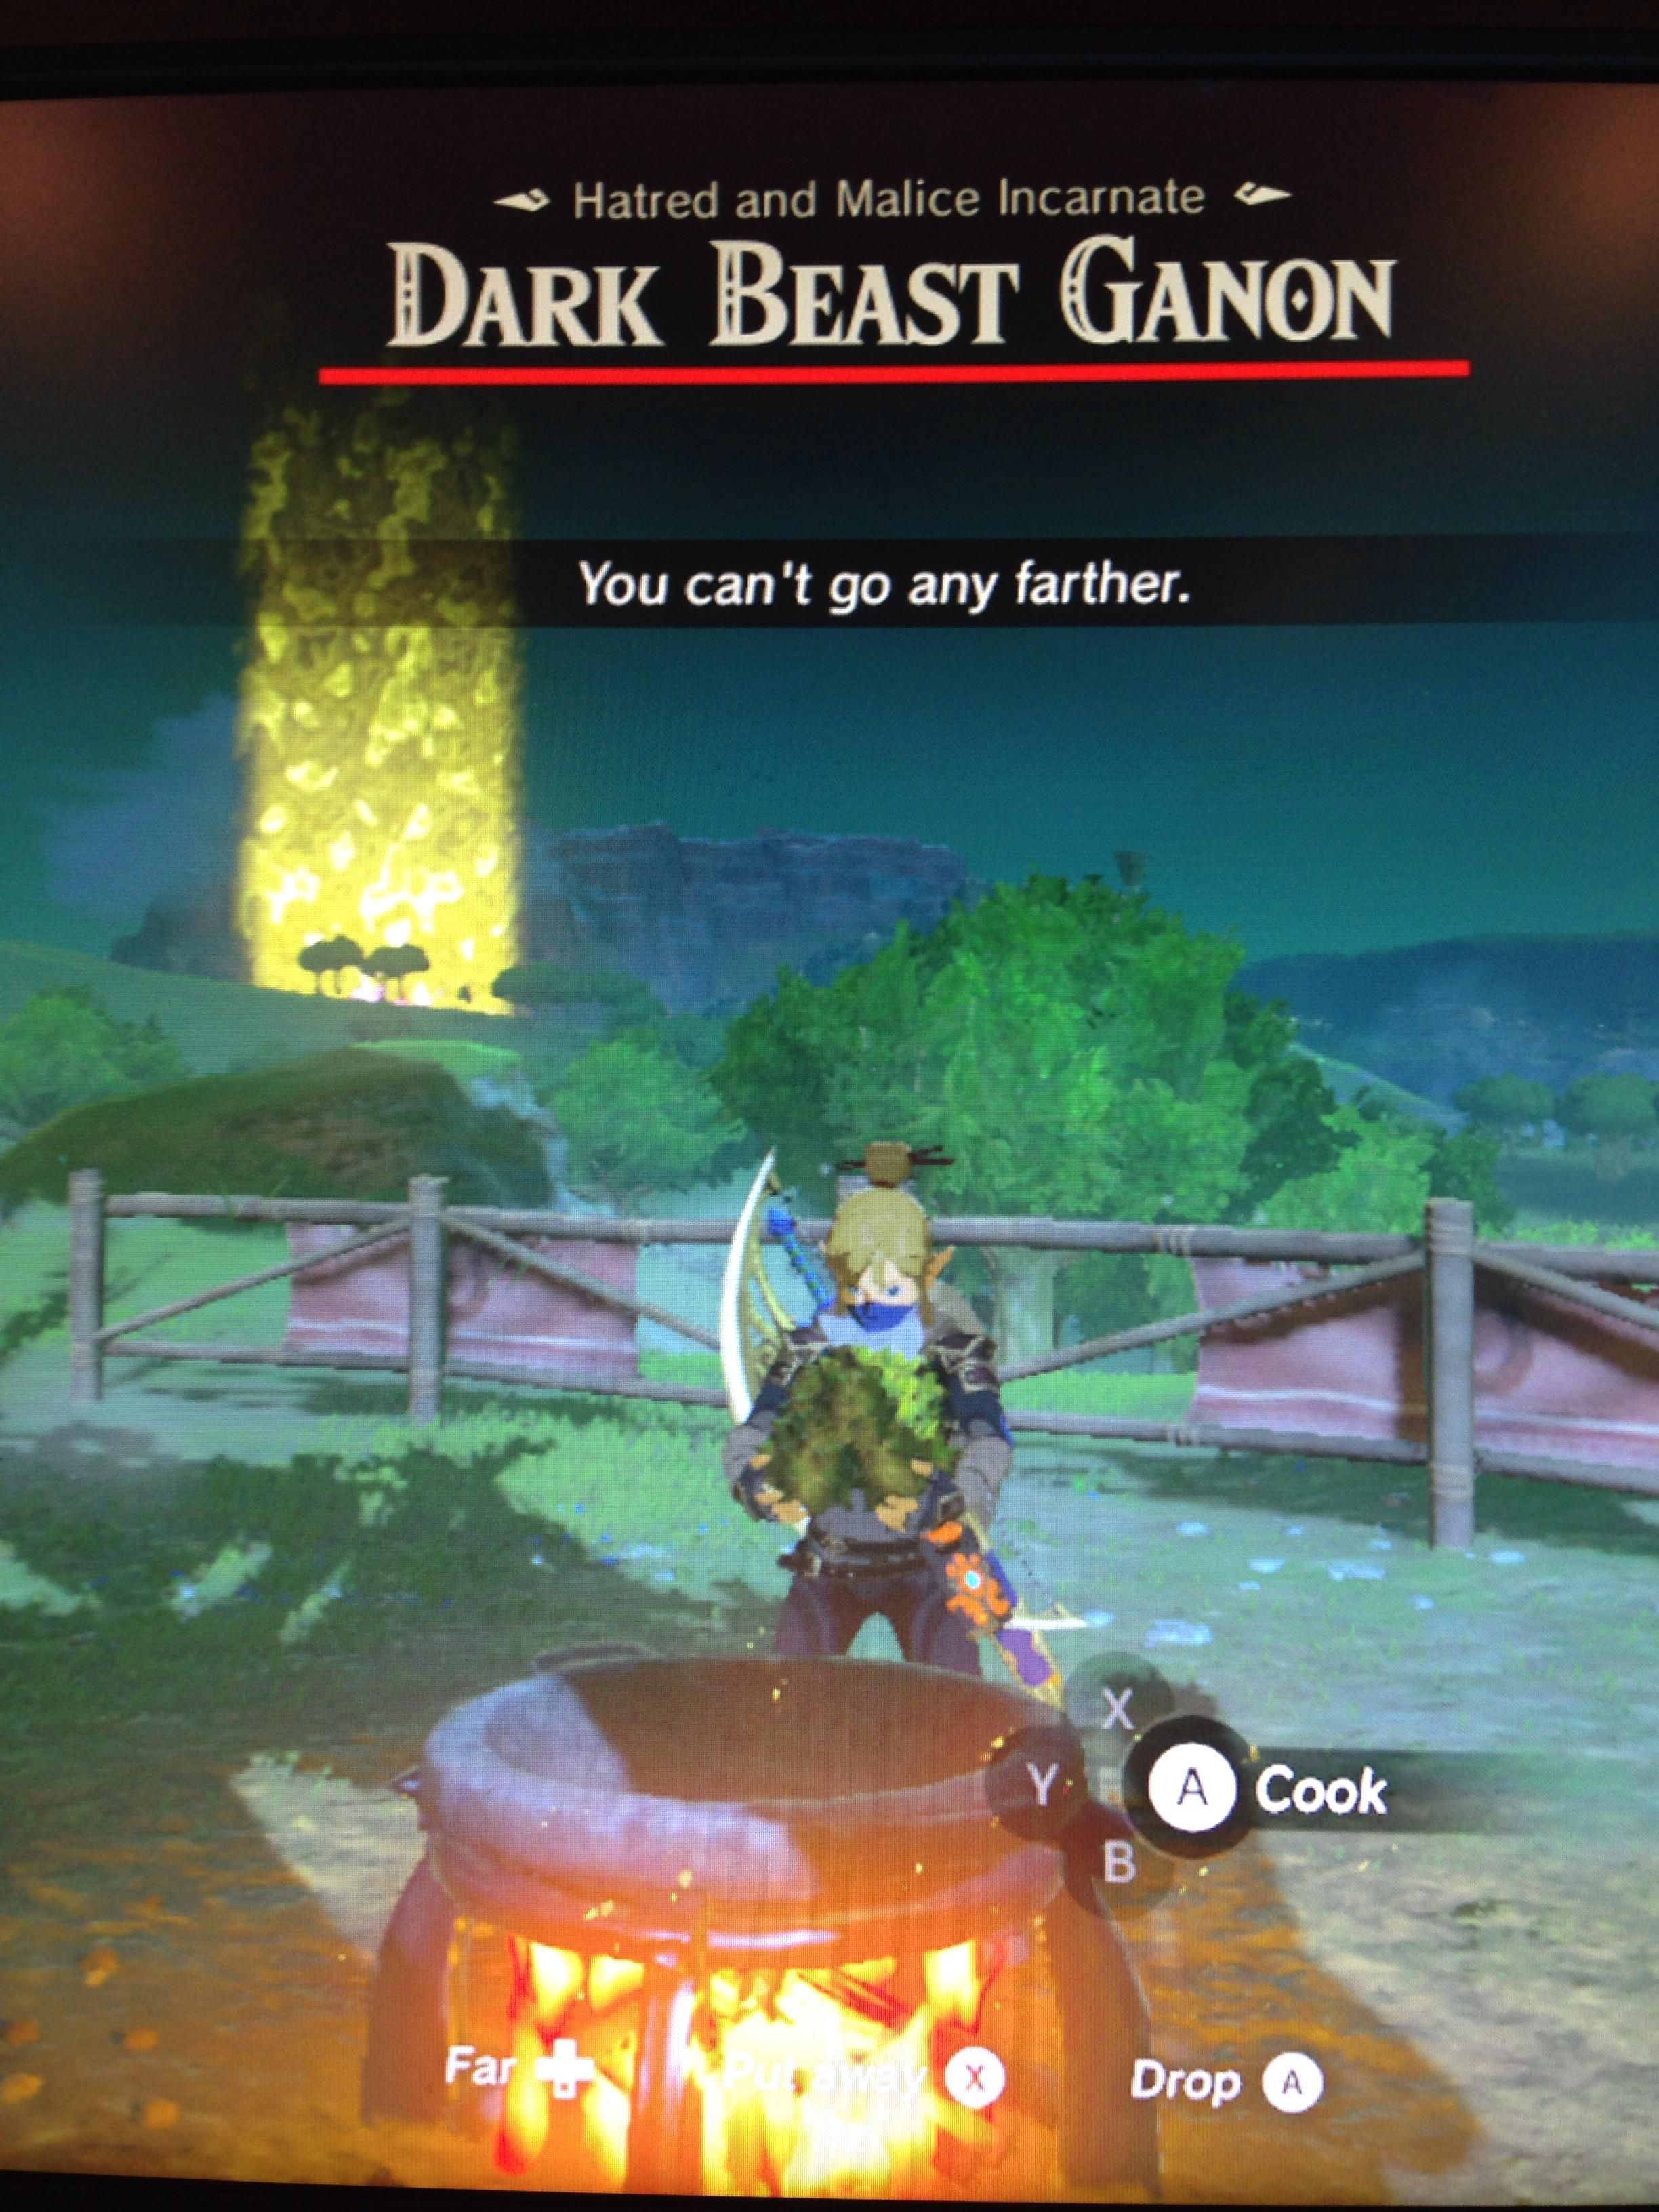 BOTW][SPOILER] When the world needs saving but cooking is life ...